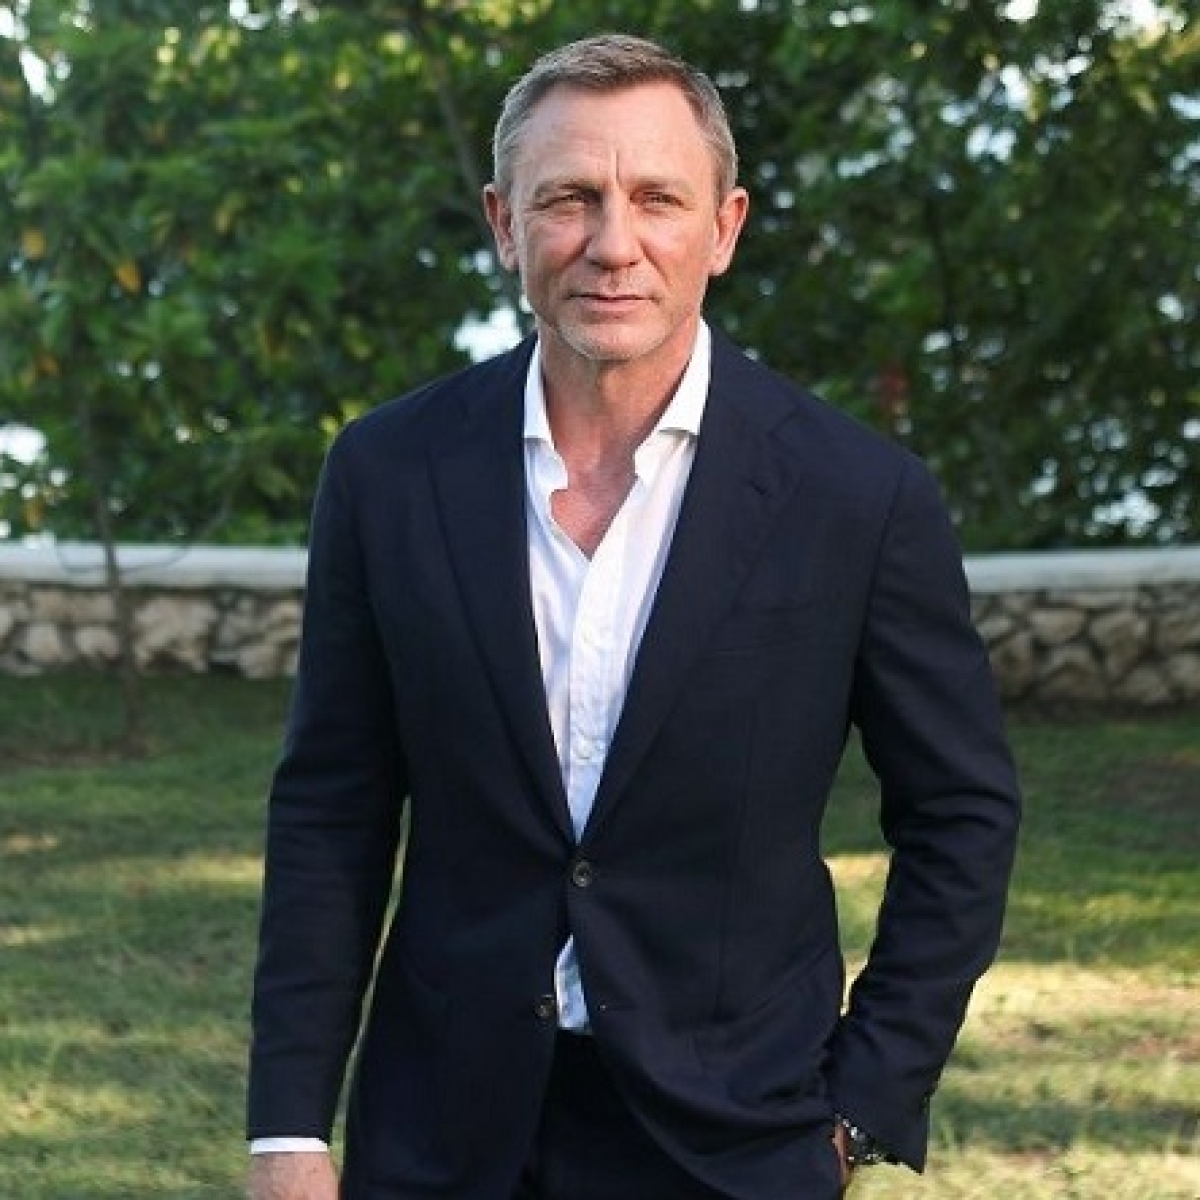 Leave it better than when you found it: Daniel Craig's advice for next James Bond